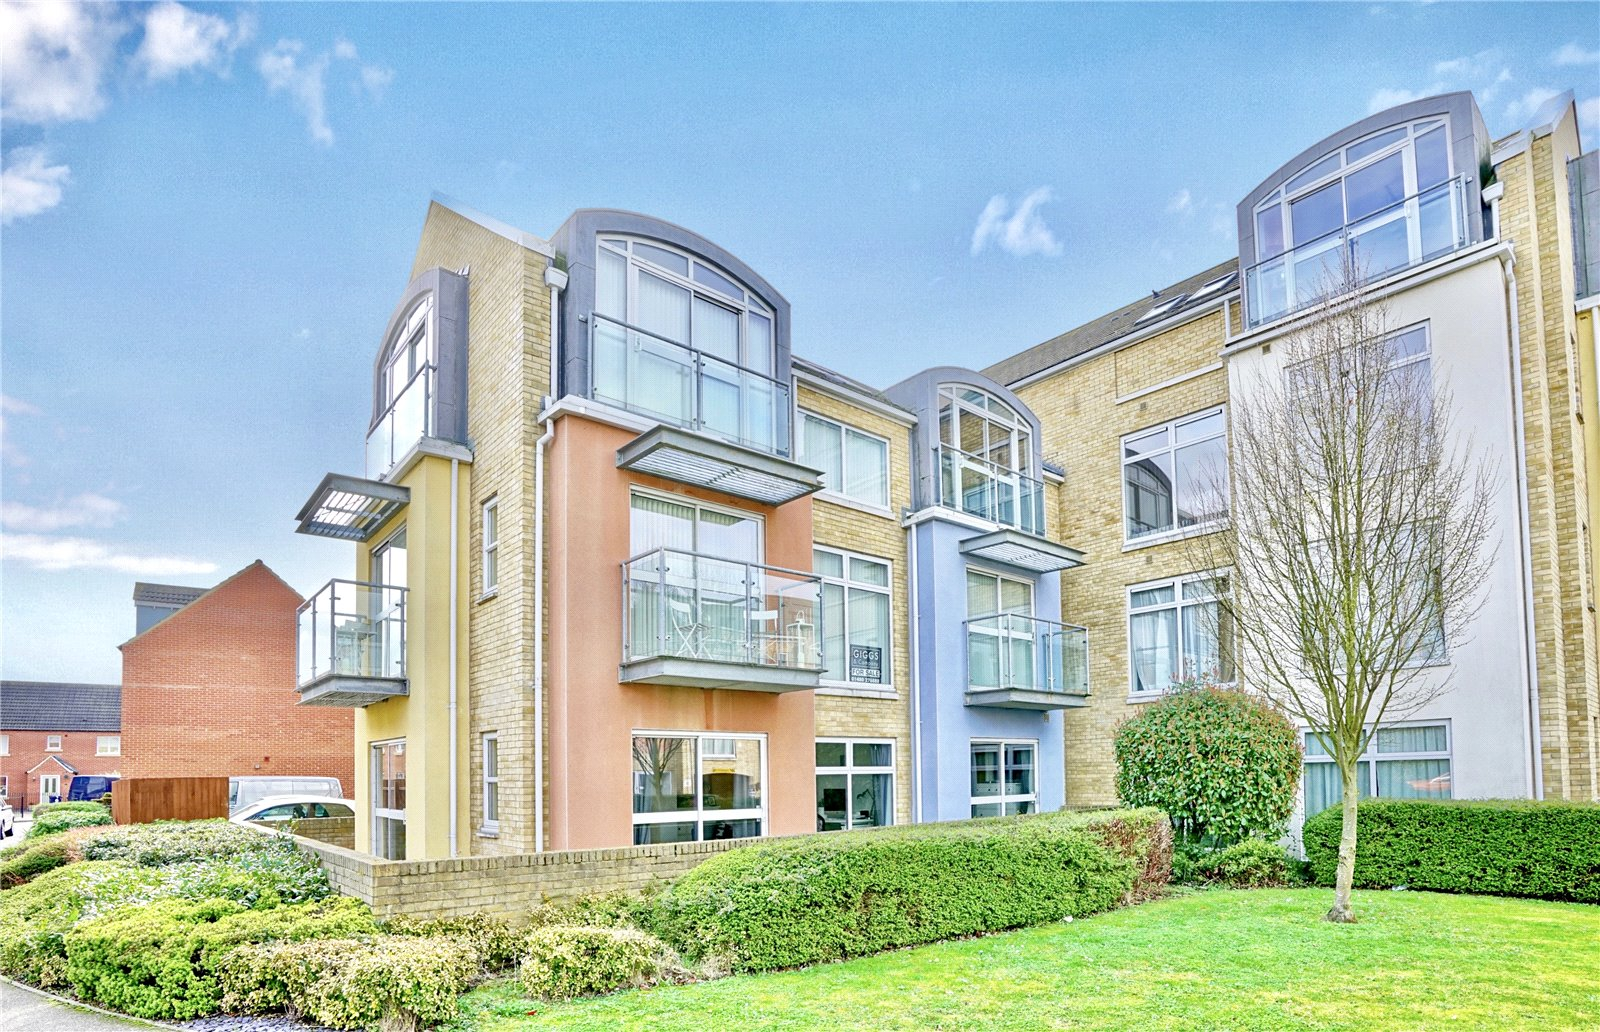 2 bed apartment for sale in Hinsby Court, Shepherd Drive - Property Image 1